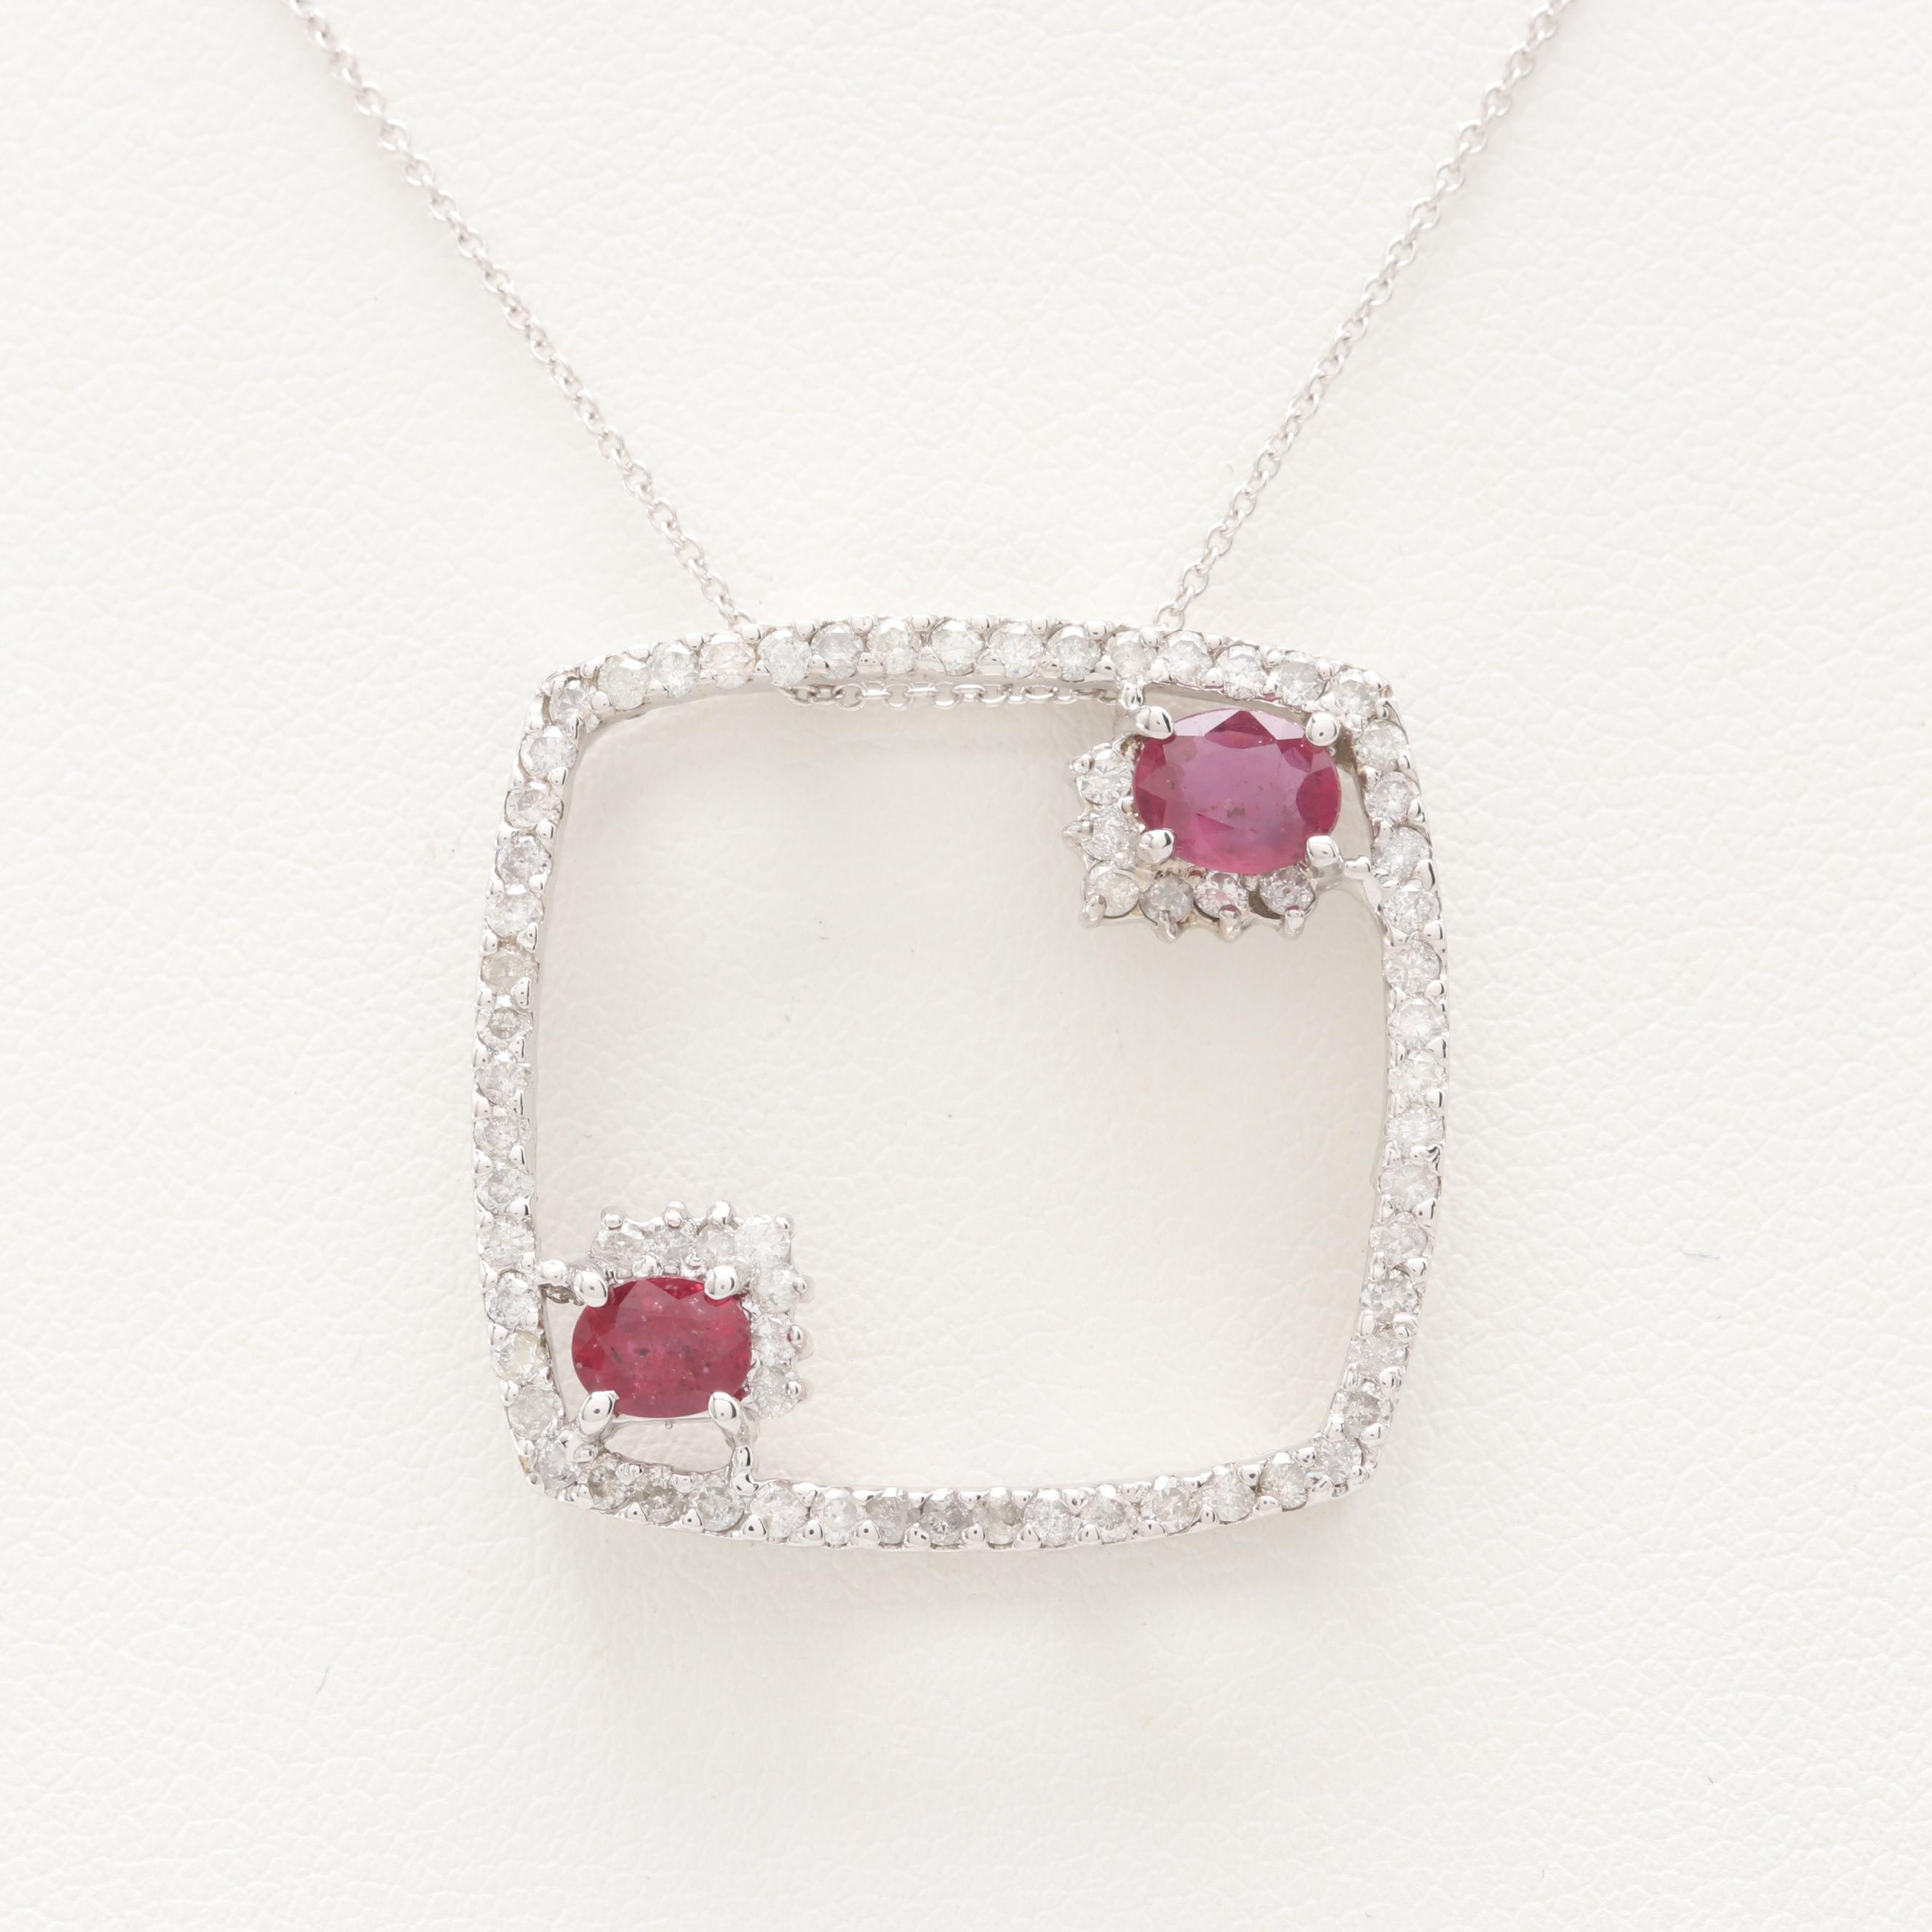 14K White Gold Ruby and 1.03 CTW Diamond Necklace